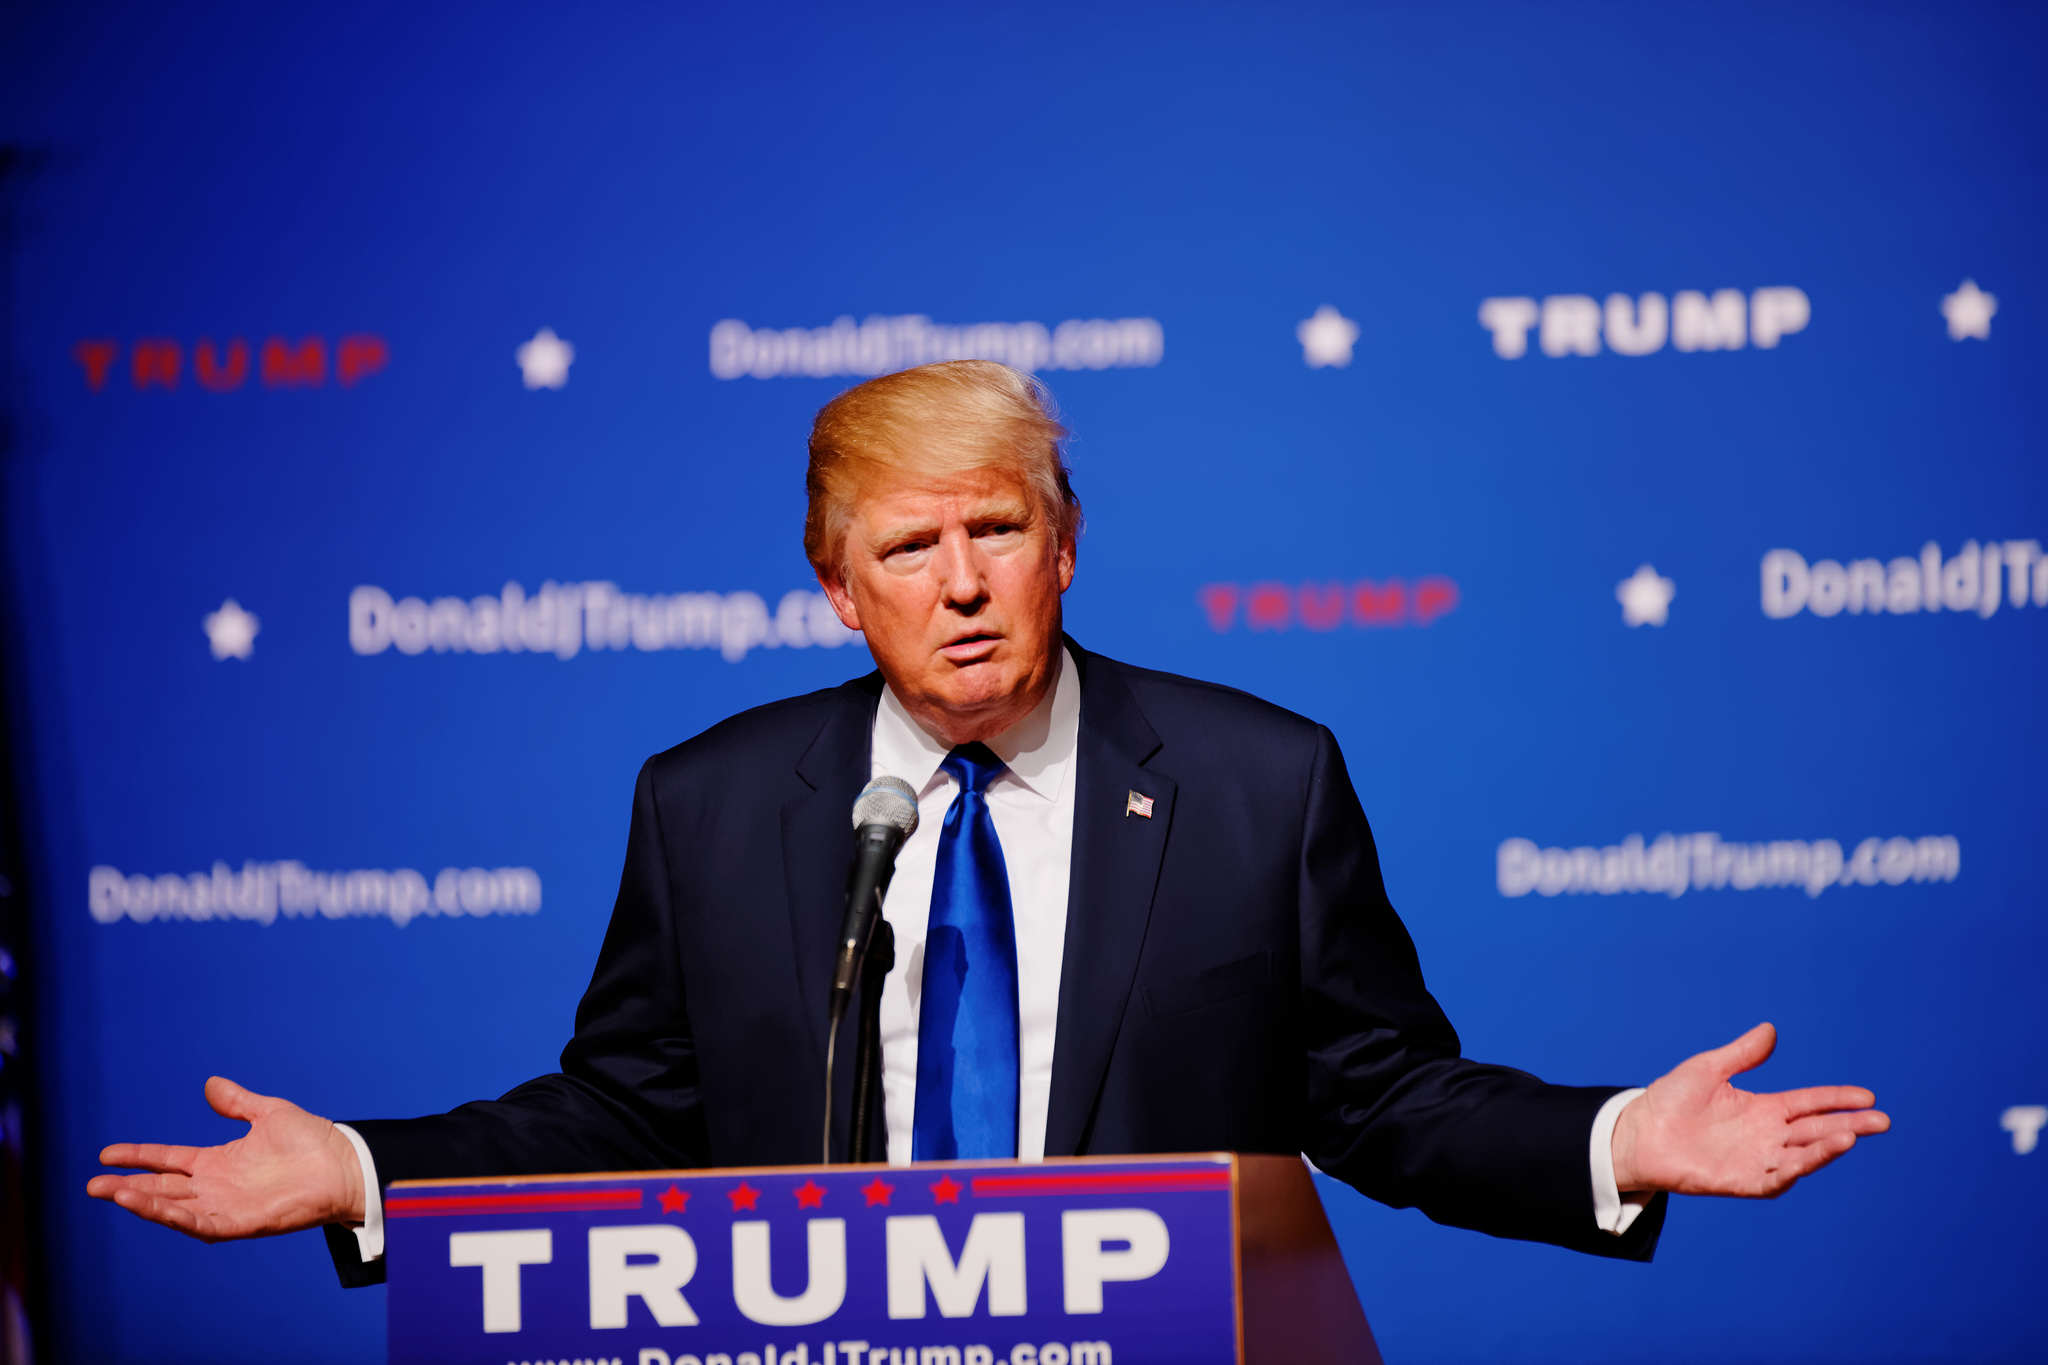 Donald Trump Hits Back After Allegations About His Private Parts 20724485306 26e4ca01b4 k